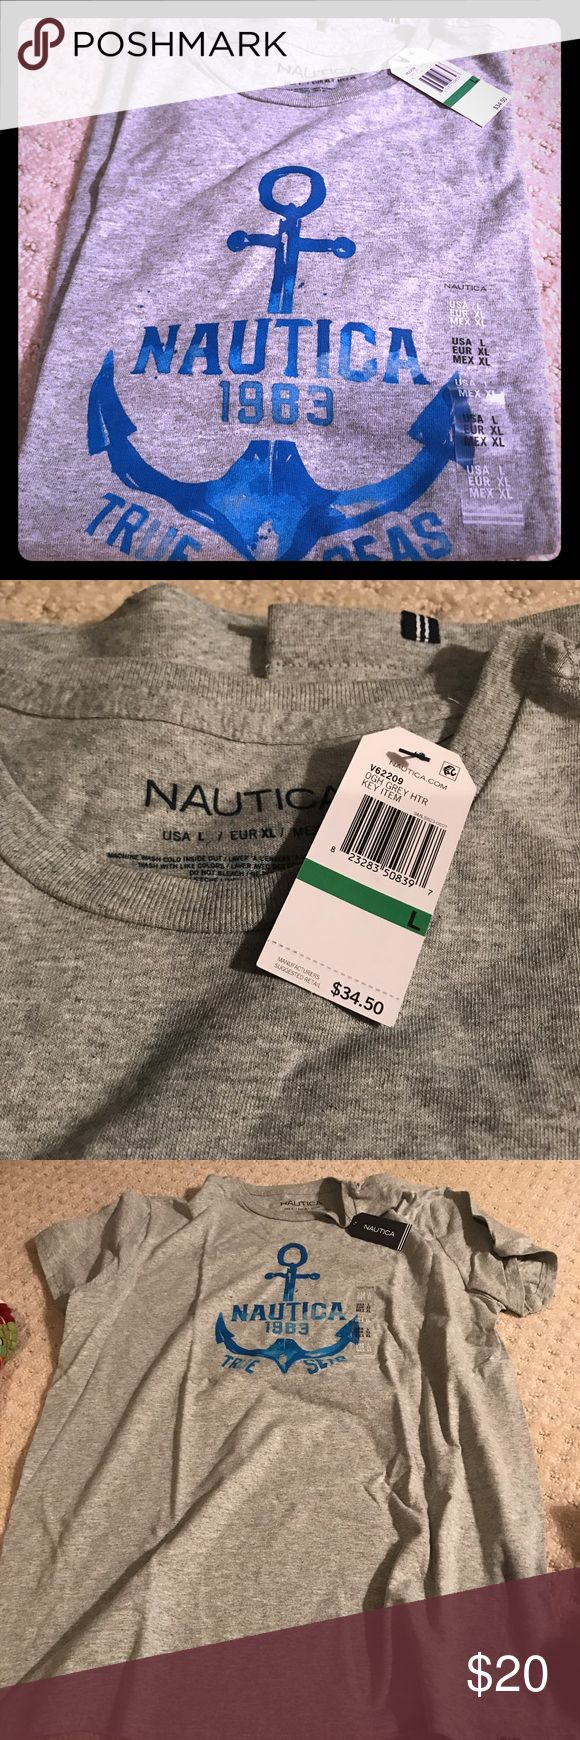 NWT Men's Nautical Tee size Large Brand new with the tags still on. Really nice quality as this brand always is! Grab it up!!! Nautica Shirts Tees - Short Sleeve